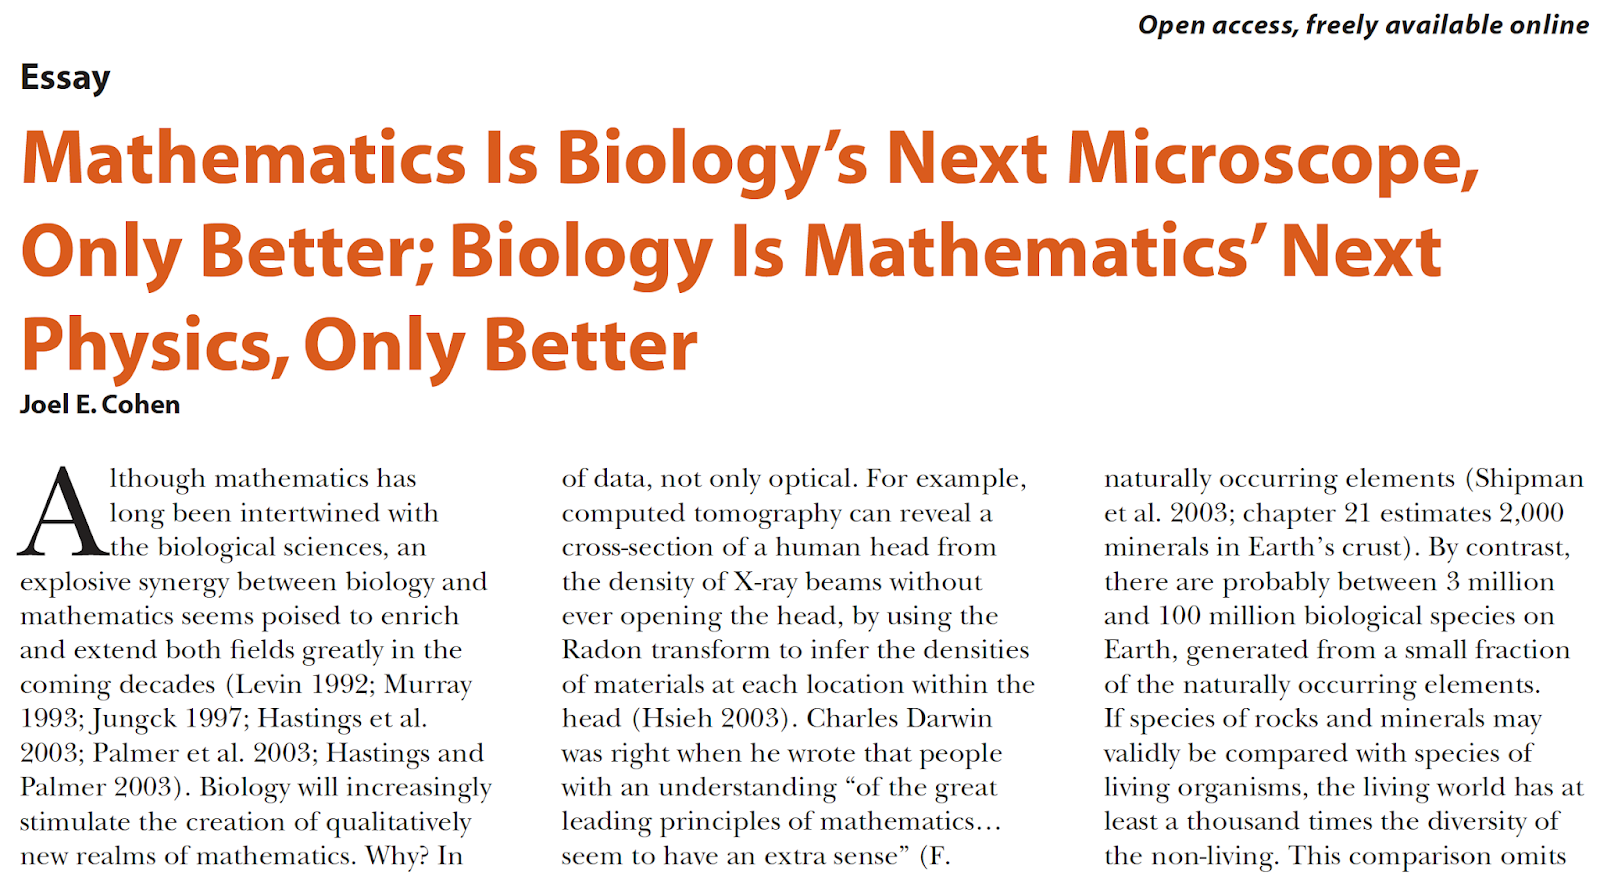 In his 2004 article Mathematics is Biology's Next Microscope, Only Better;  Biology is Mathematics' Next Physics, Only Better (PLoS Biol 2:e439), ...